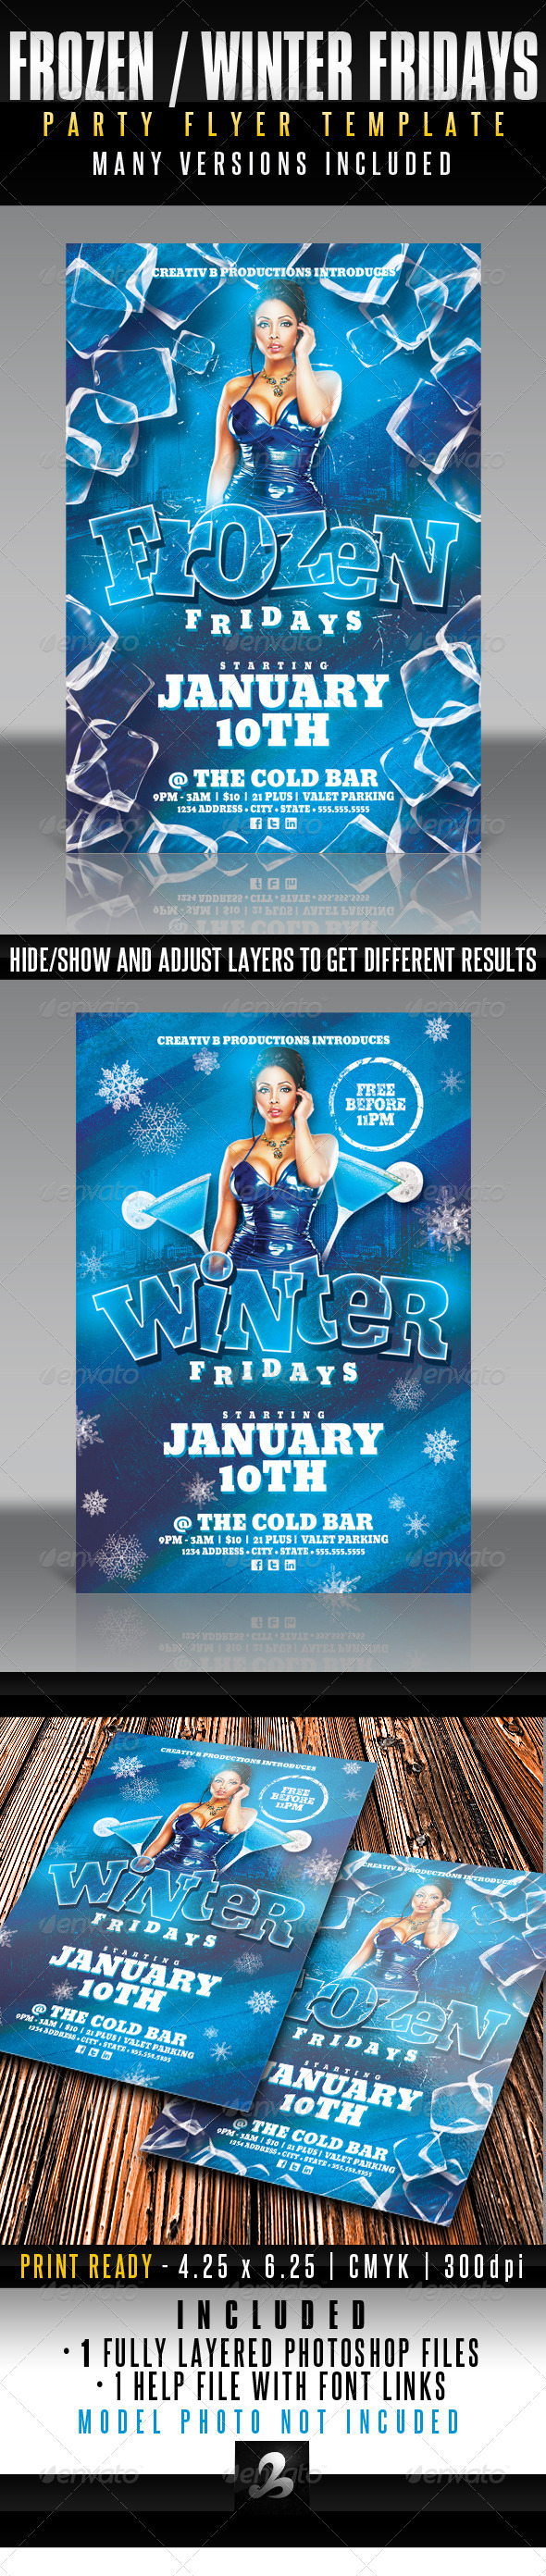 Frozen / Winter Fridays Party Flyer Template - Clubs & Parties Events